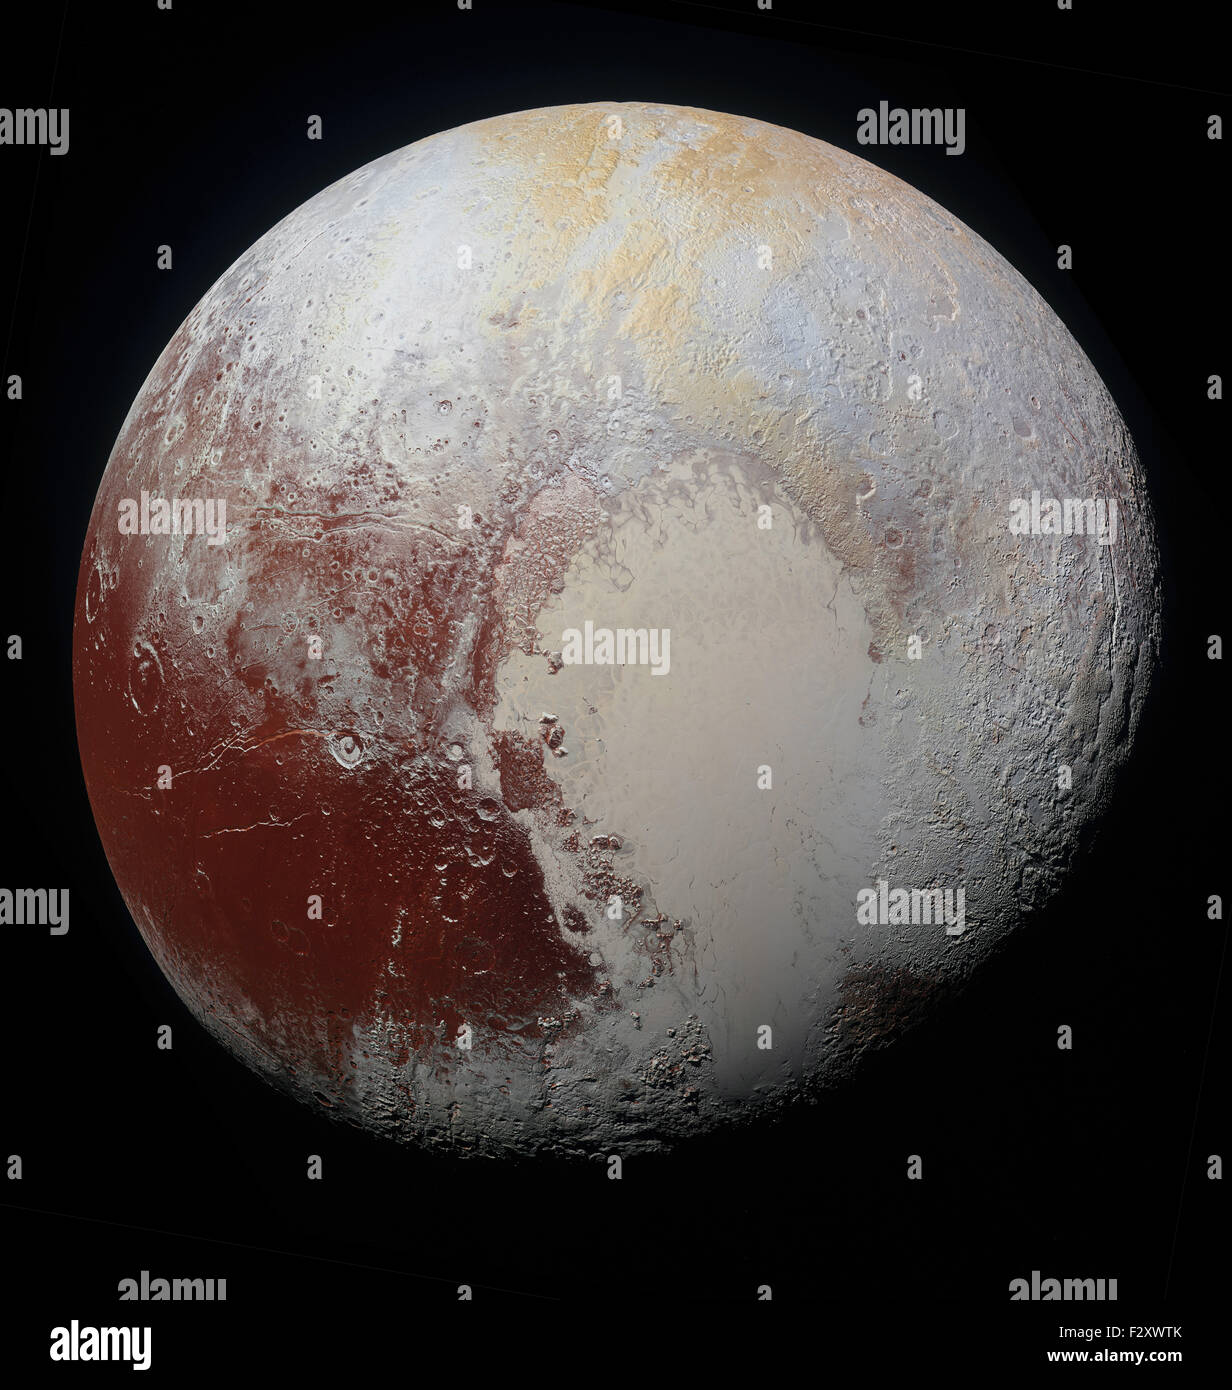 24th September, 2015. NASA's New Horizons spacecraft captured this super-high-resolution enhanced color imagery - Stock Image